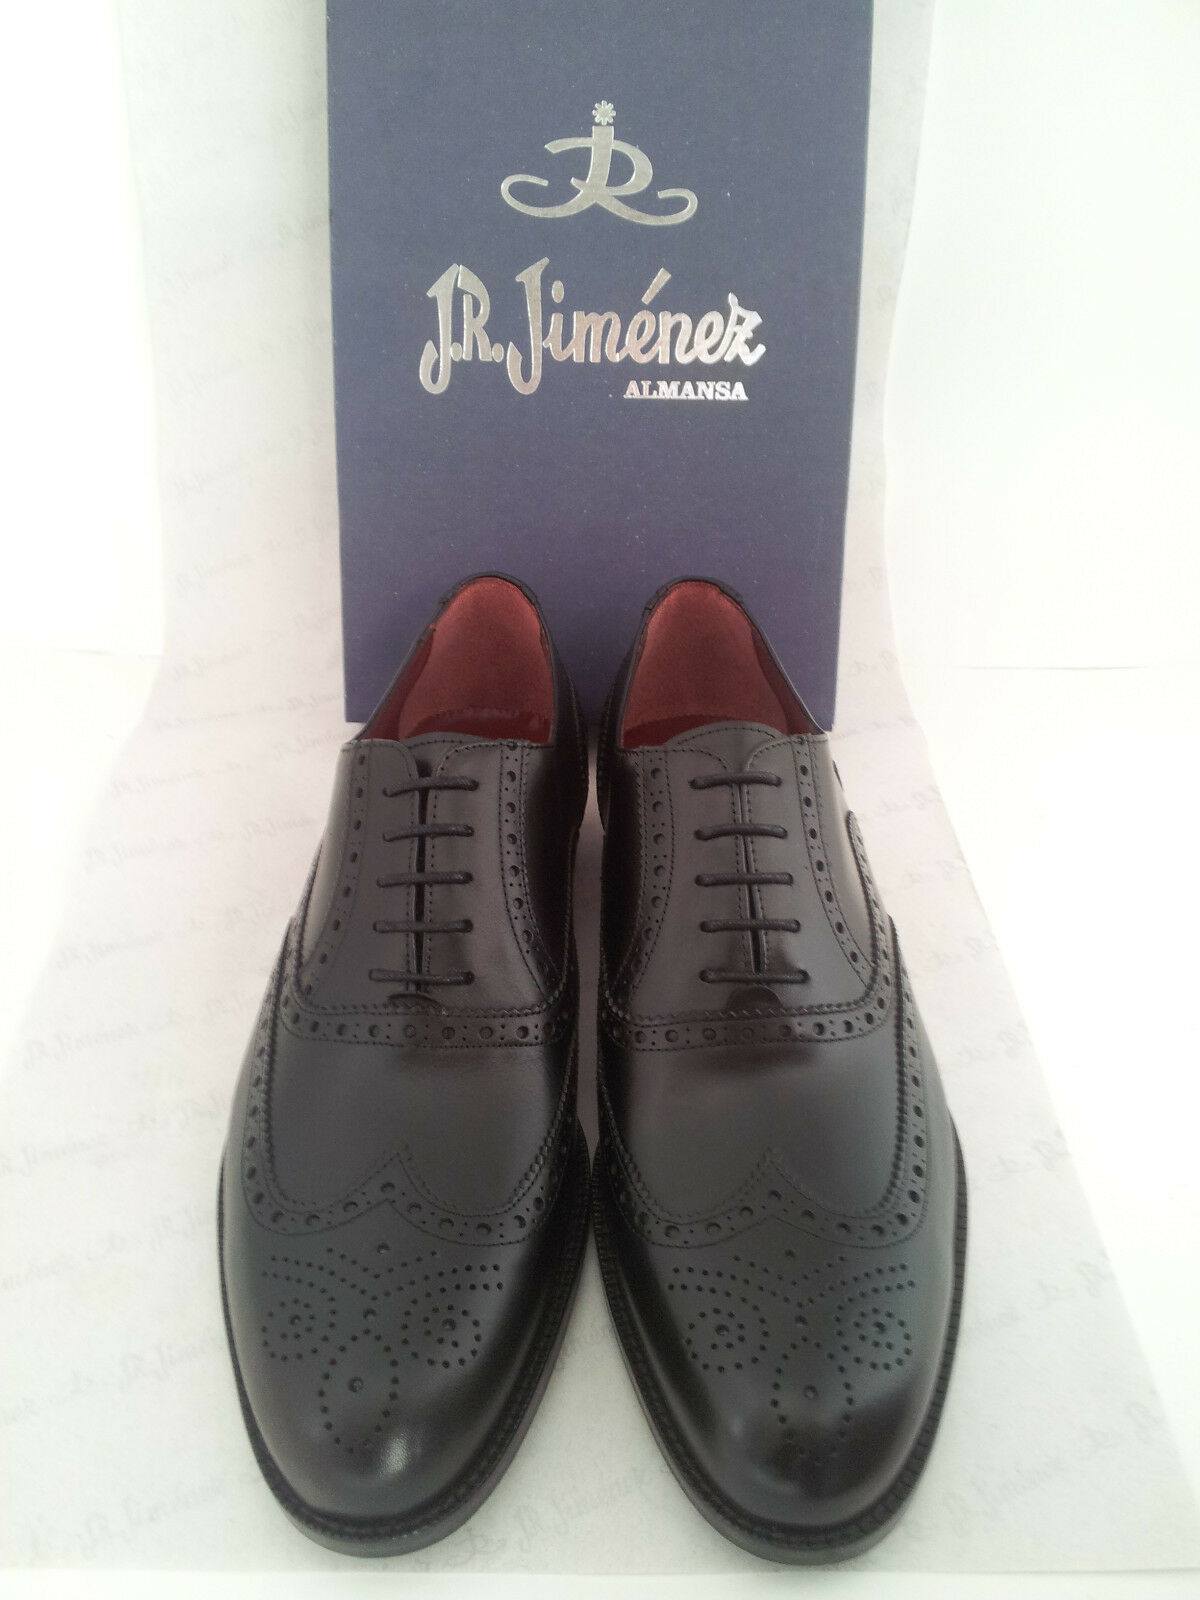 outlet Mens Oxford scarpe Leather JR JIMENEZ Marrone nero nero nero US Dimensione 6 7 8 9 10 11 12 SPAIN  caldo